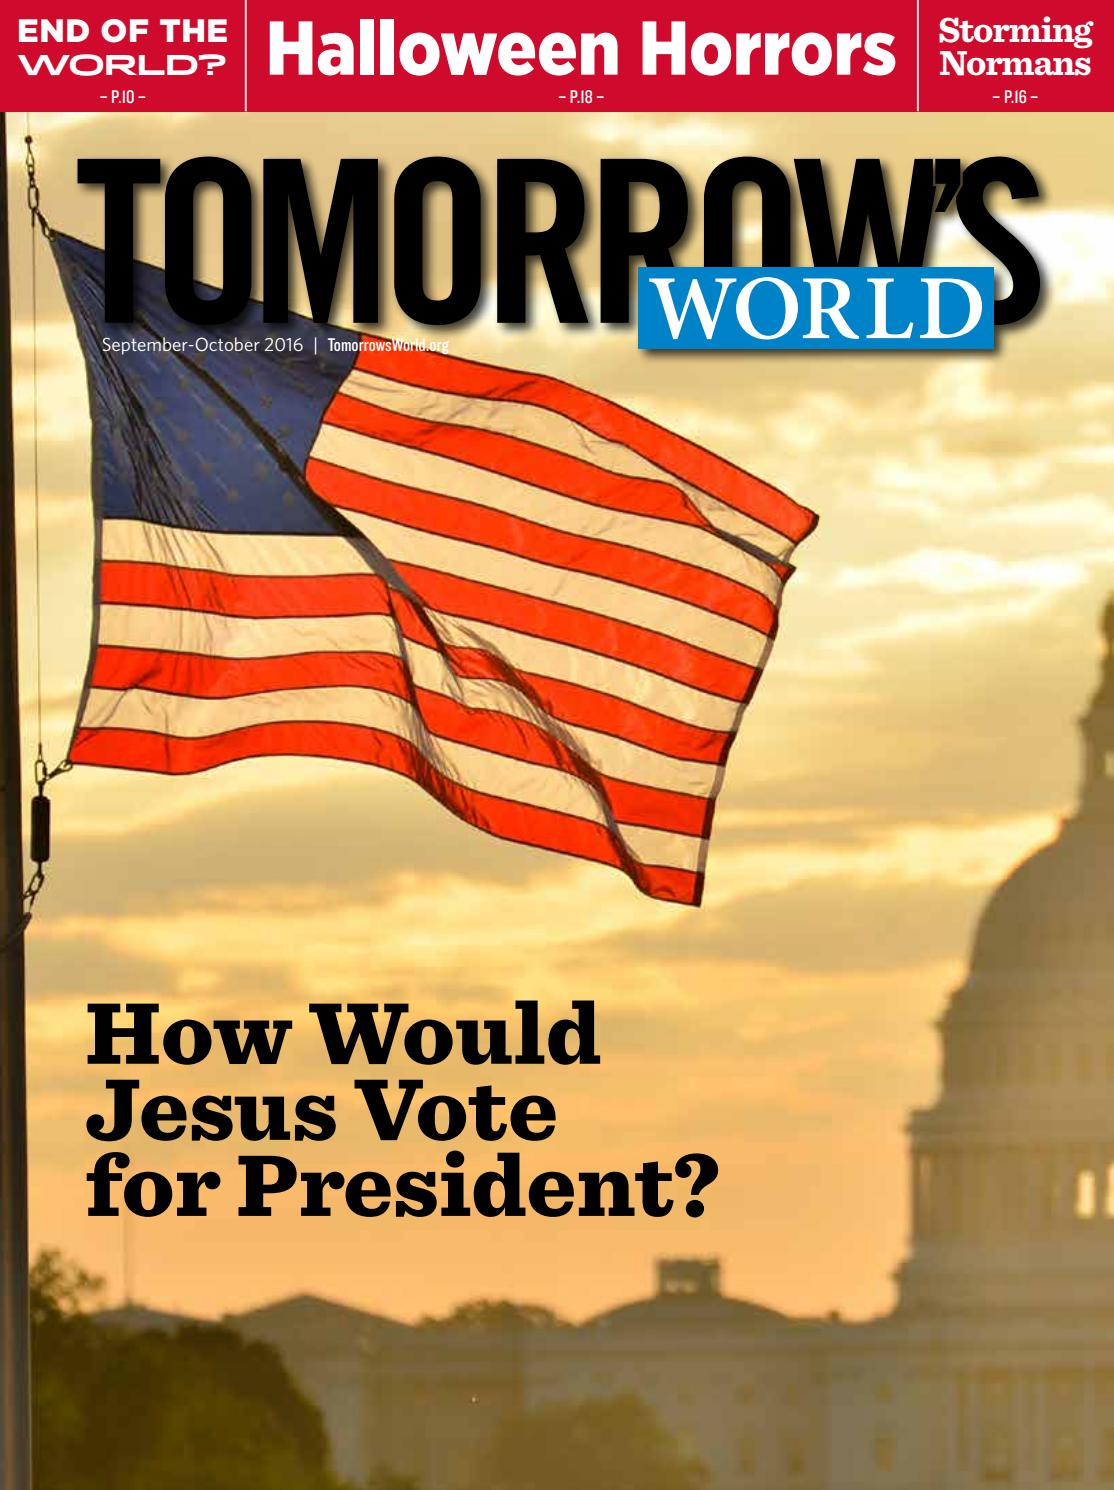 Sept-Oct 2016 by Tomorrow's World - issuu